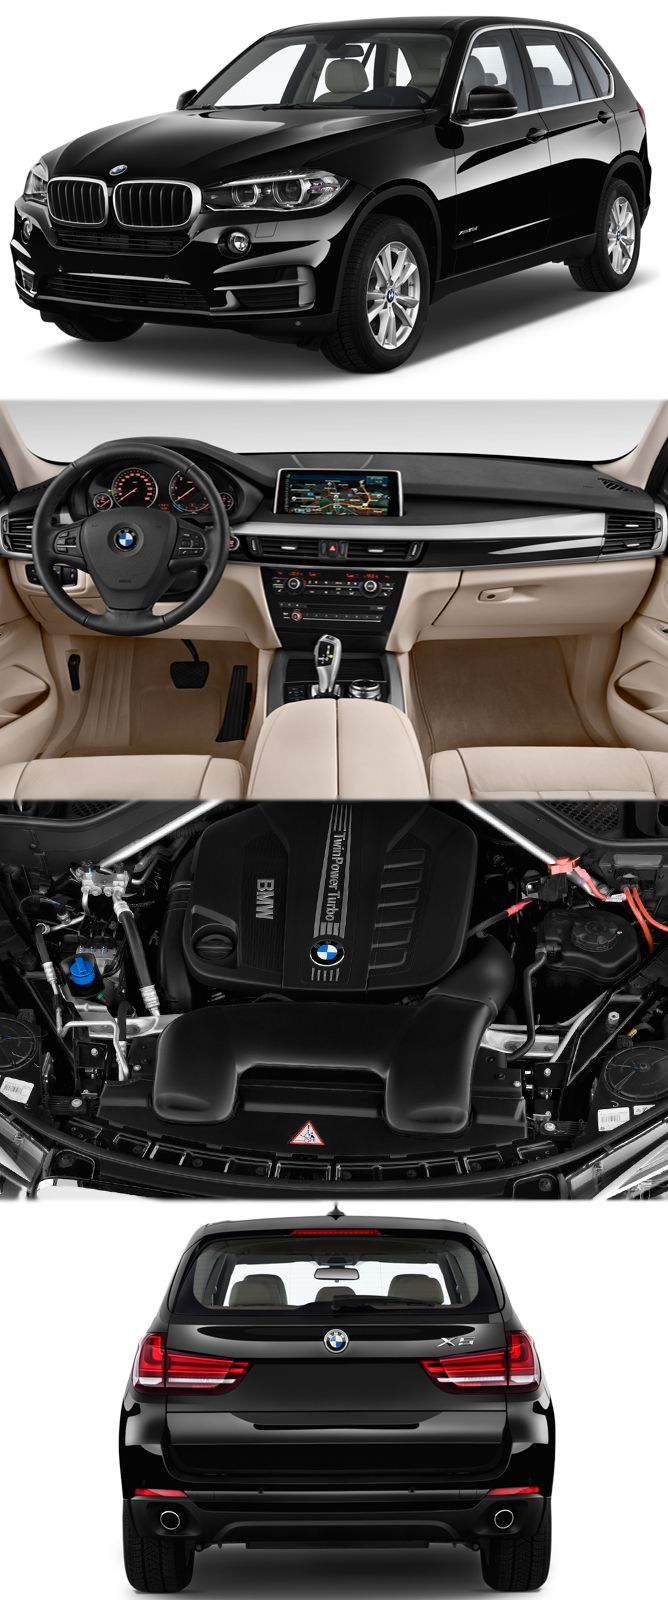 Bmw X5 Is One Of The Top Choices For Mid Sized Suv A Little Bit Of